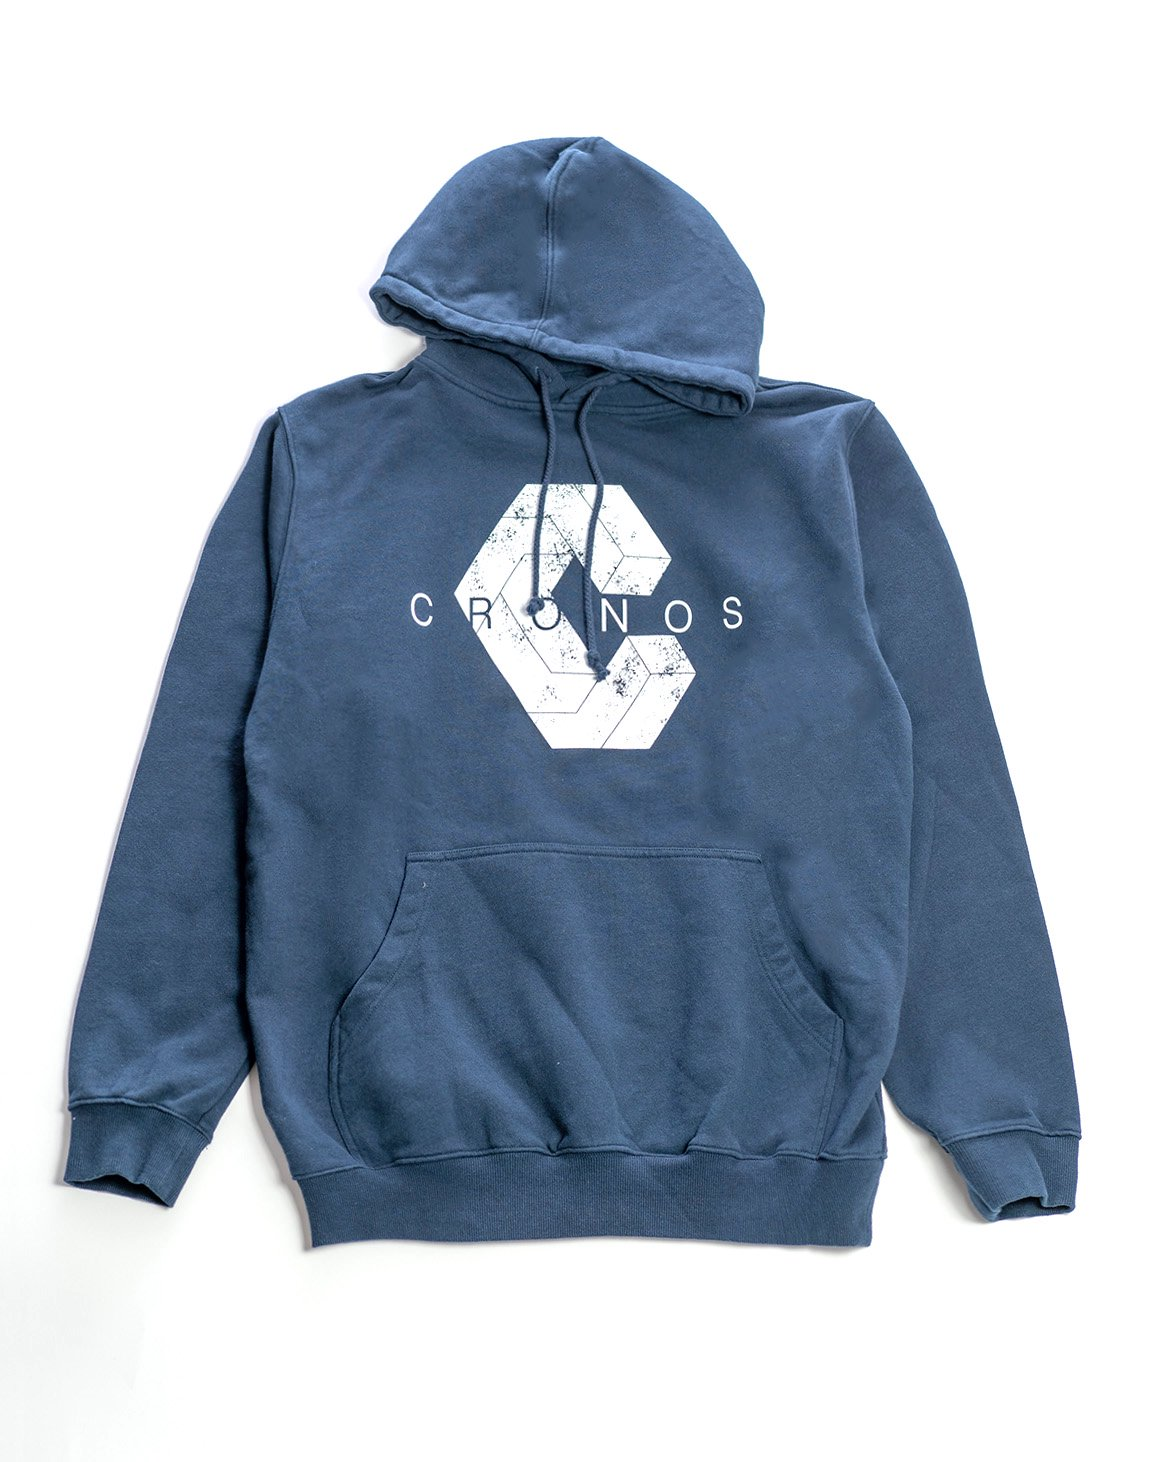 New Logo Pull Over Parka. Navy